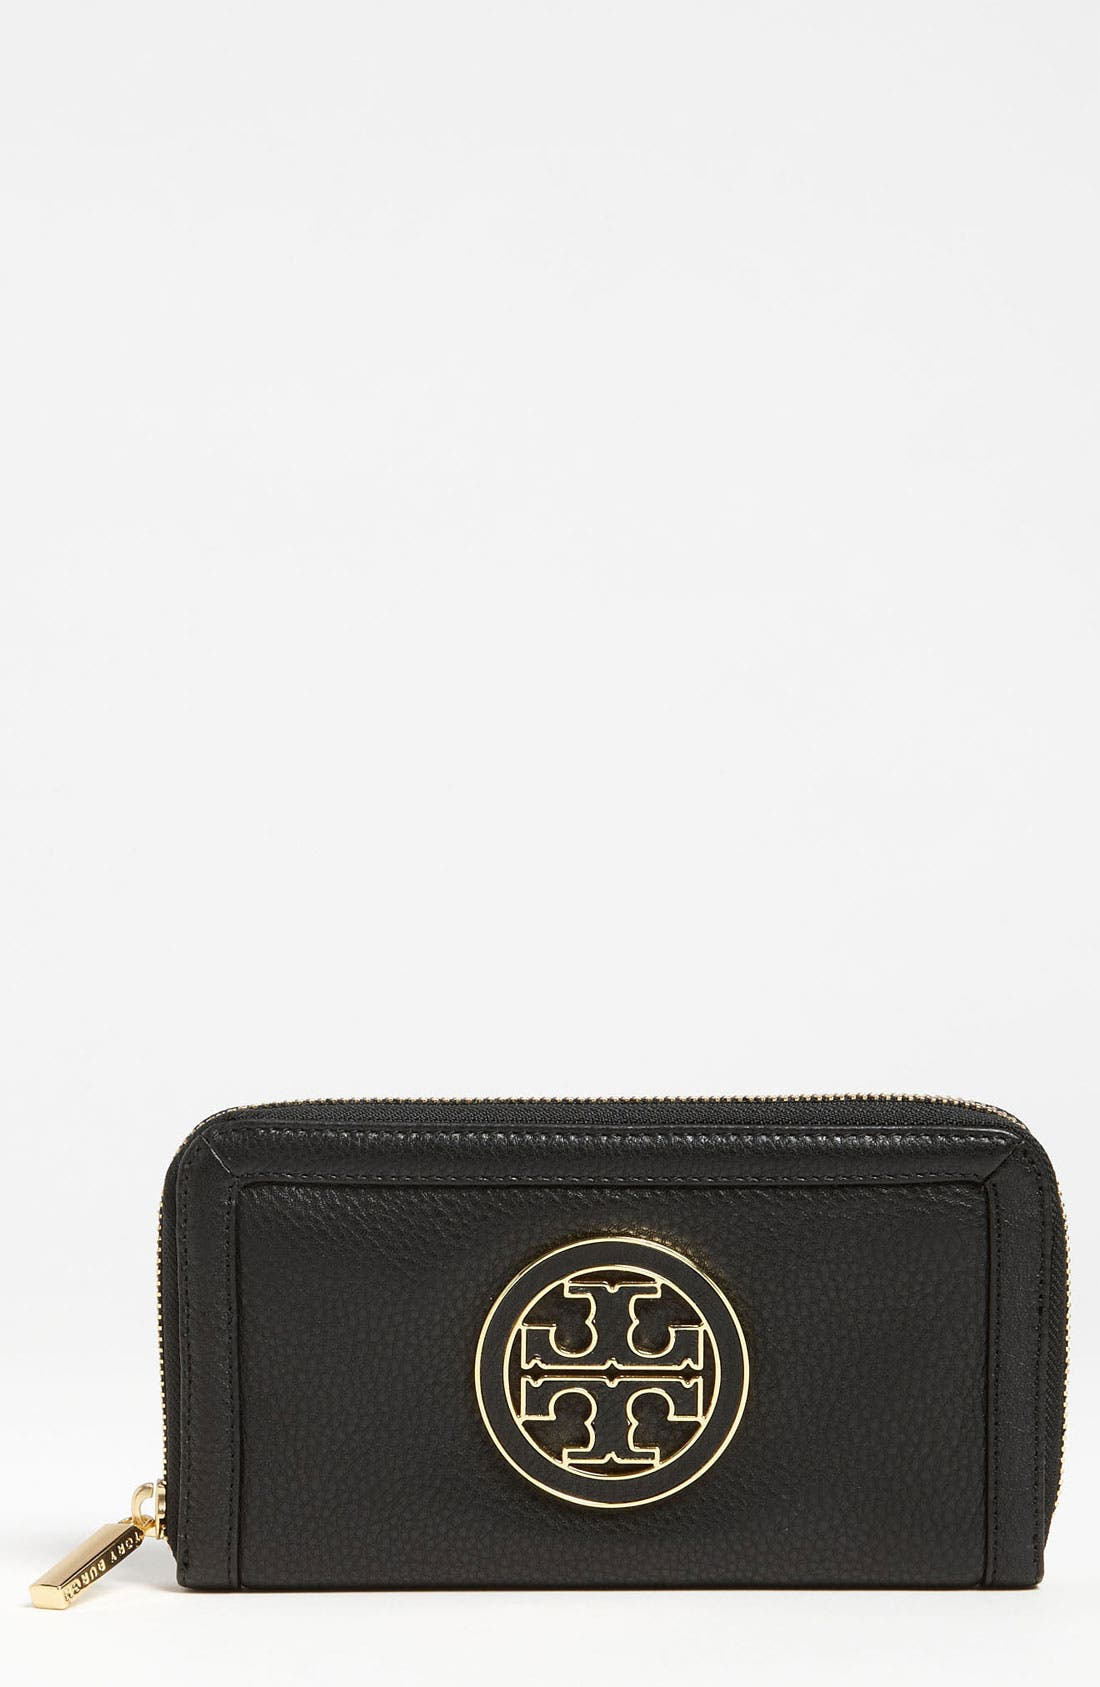 Alternate Image 1 Selected - Tory Burch 'Amanda' Continental Wallet